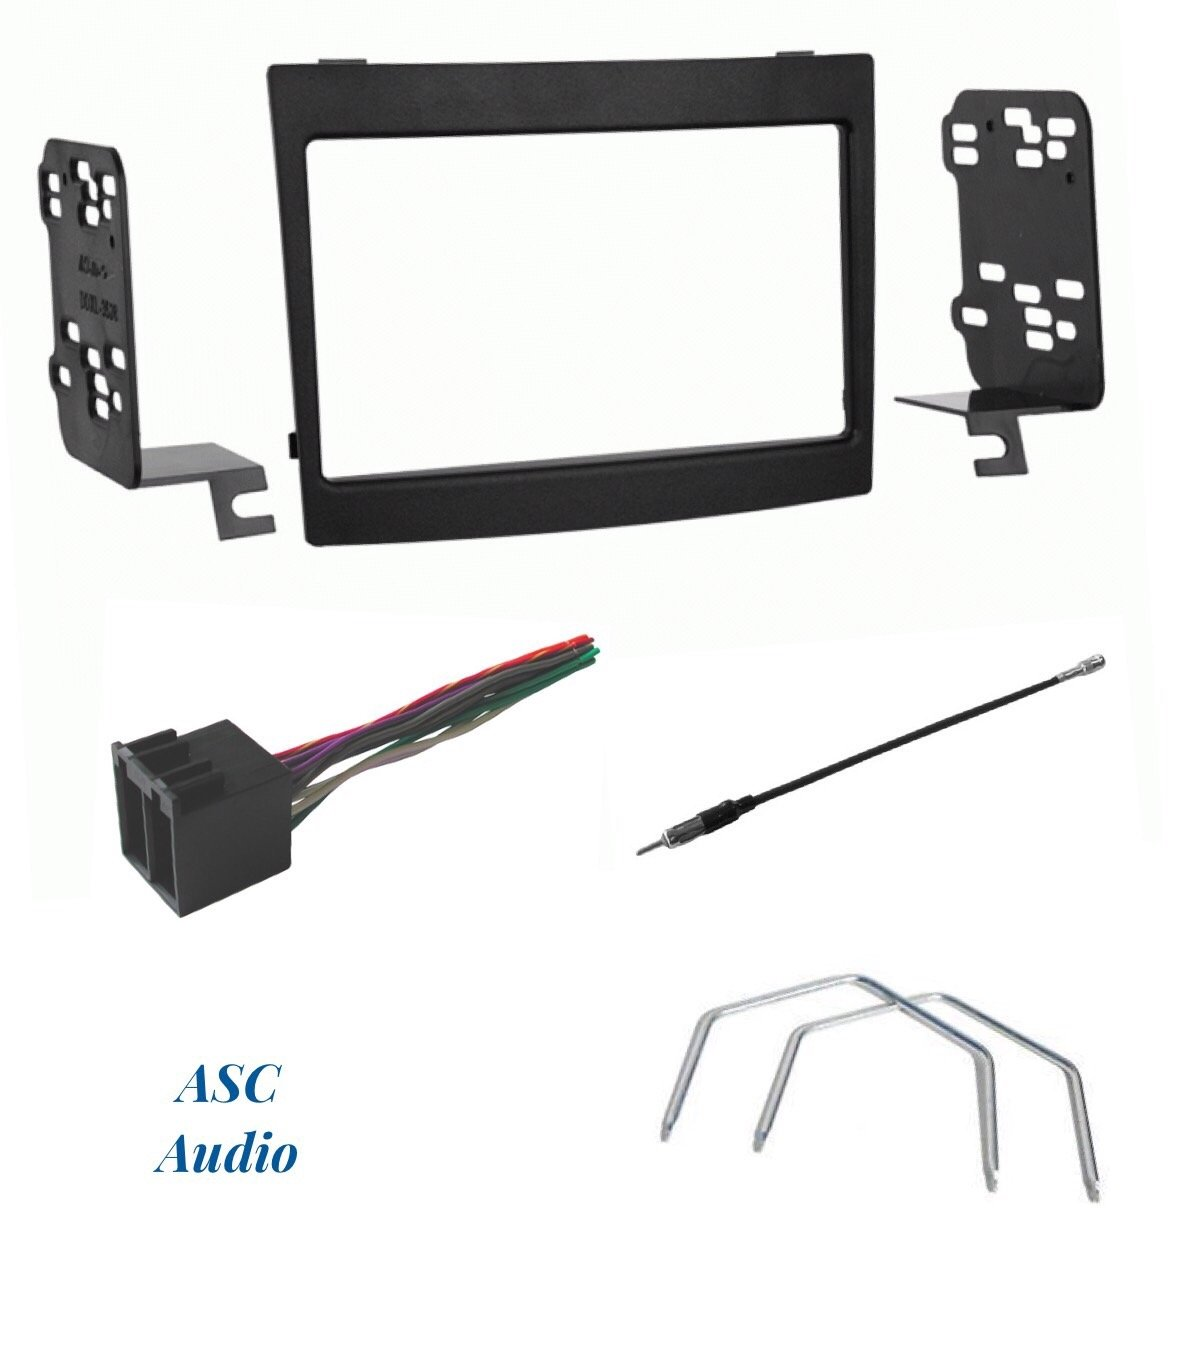 ASC Audio Car Stereo Dash Install Kit Antenna Adapter and Radio Removal Tool for Installing a Double Din Radio for some Pontiac GTO Compatible Vehicles Listed Below Other Wire Harness